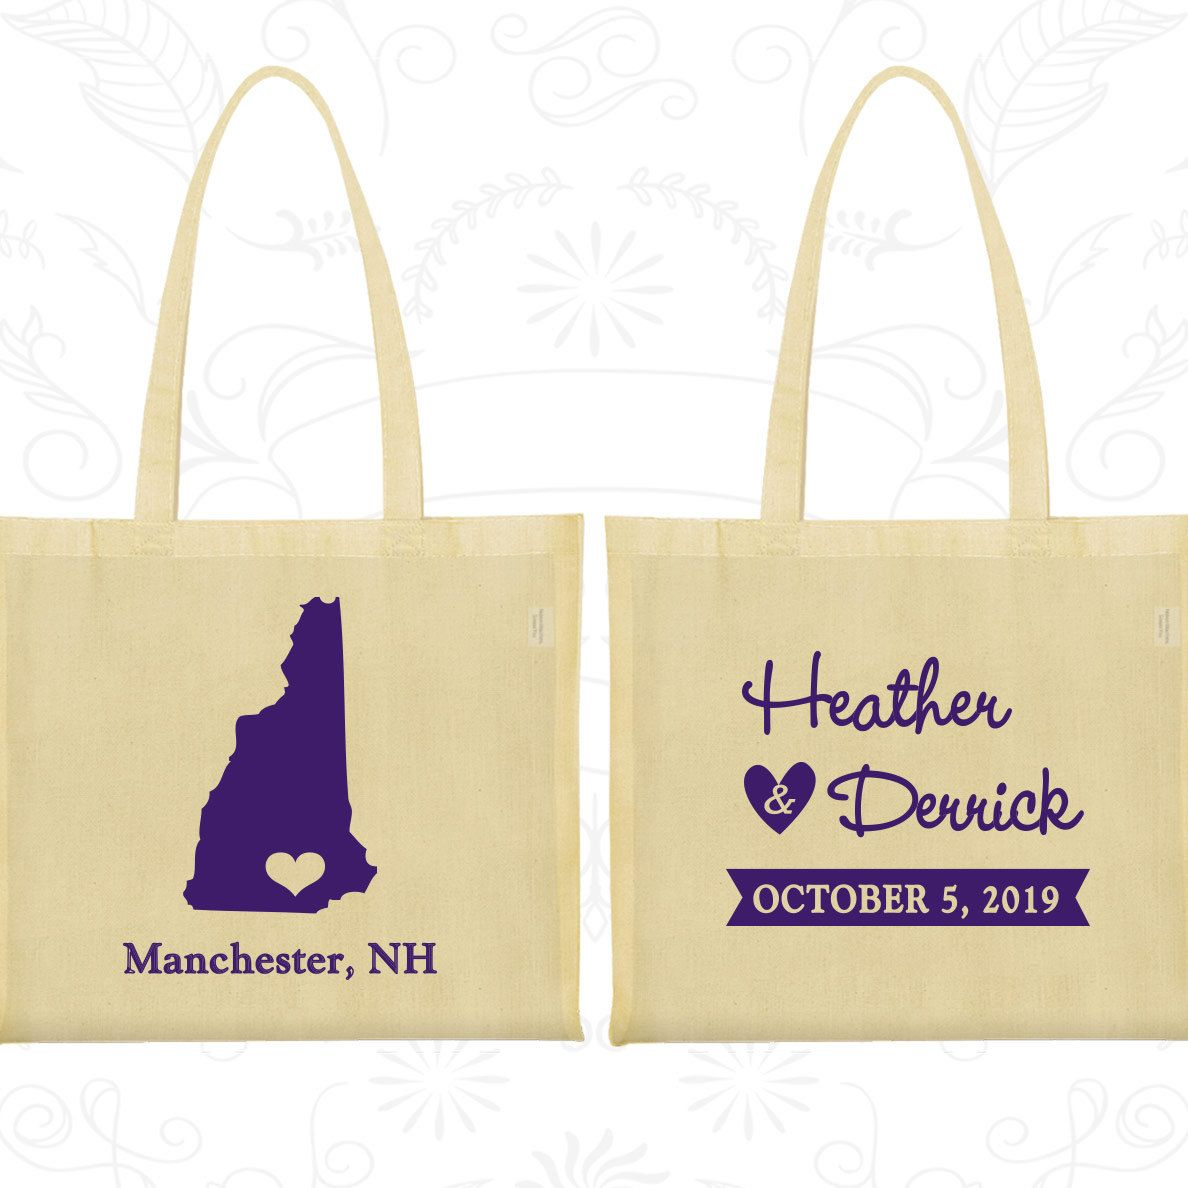 Cotton Bag, Tote Bags, Wedding Tote Bags, Personalized Tote Bags ...